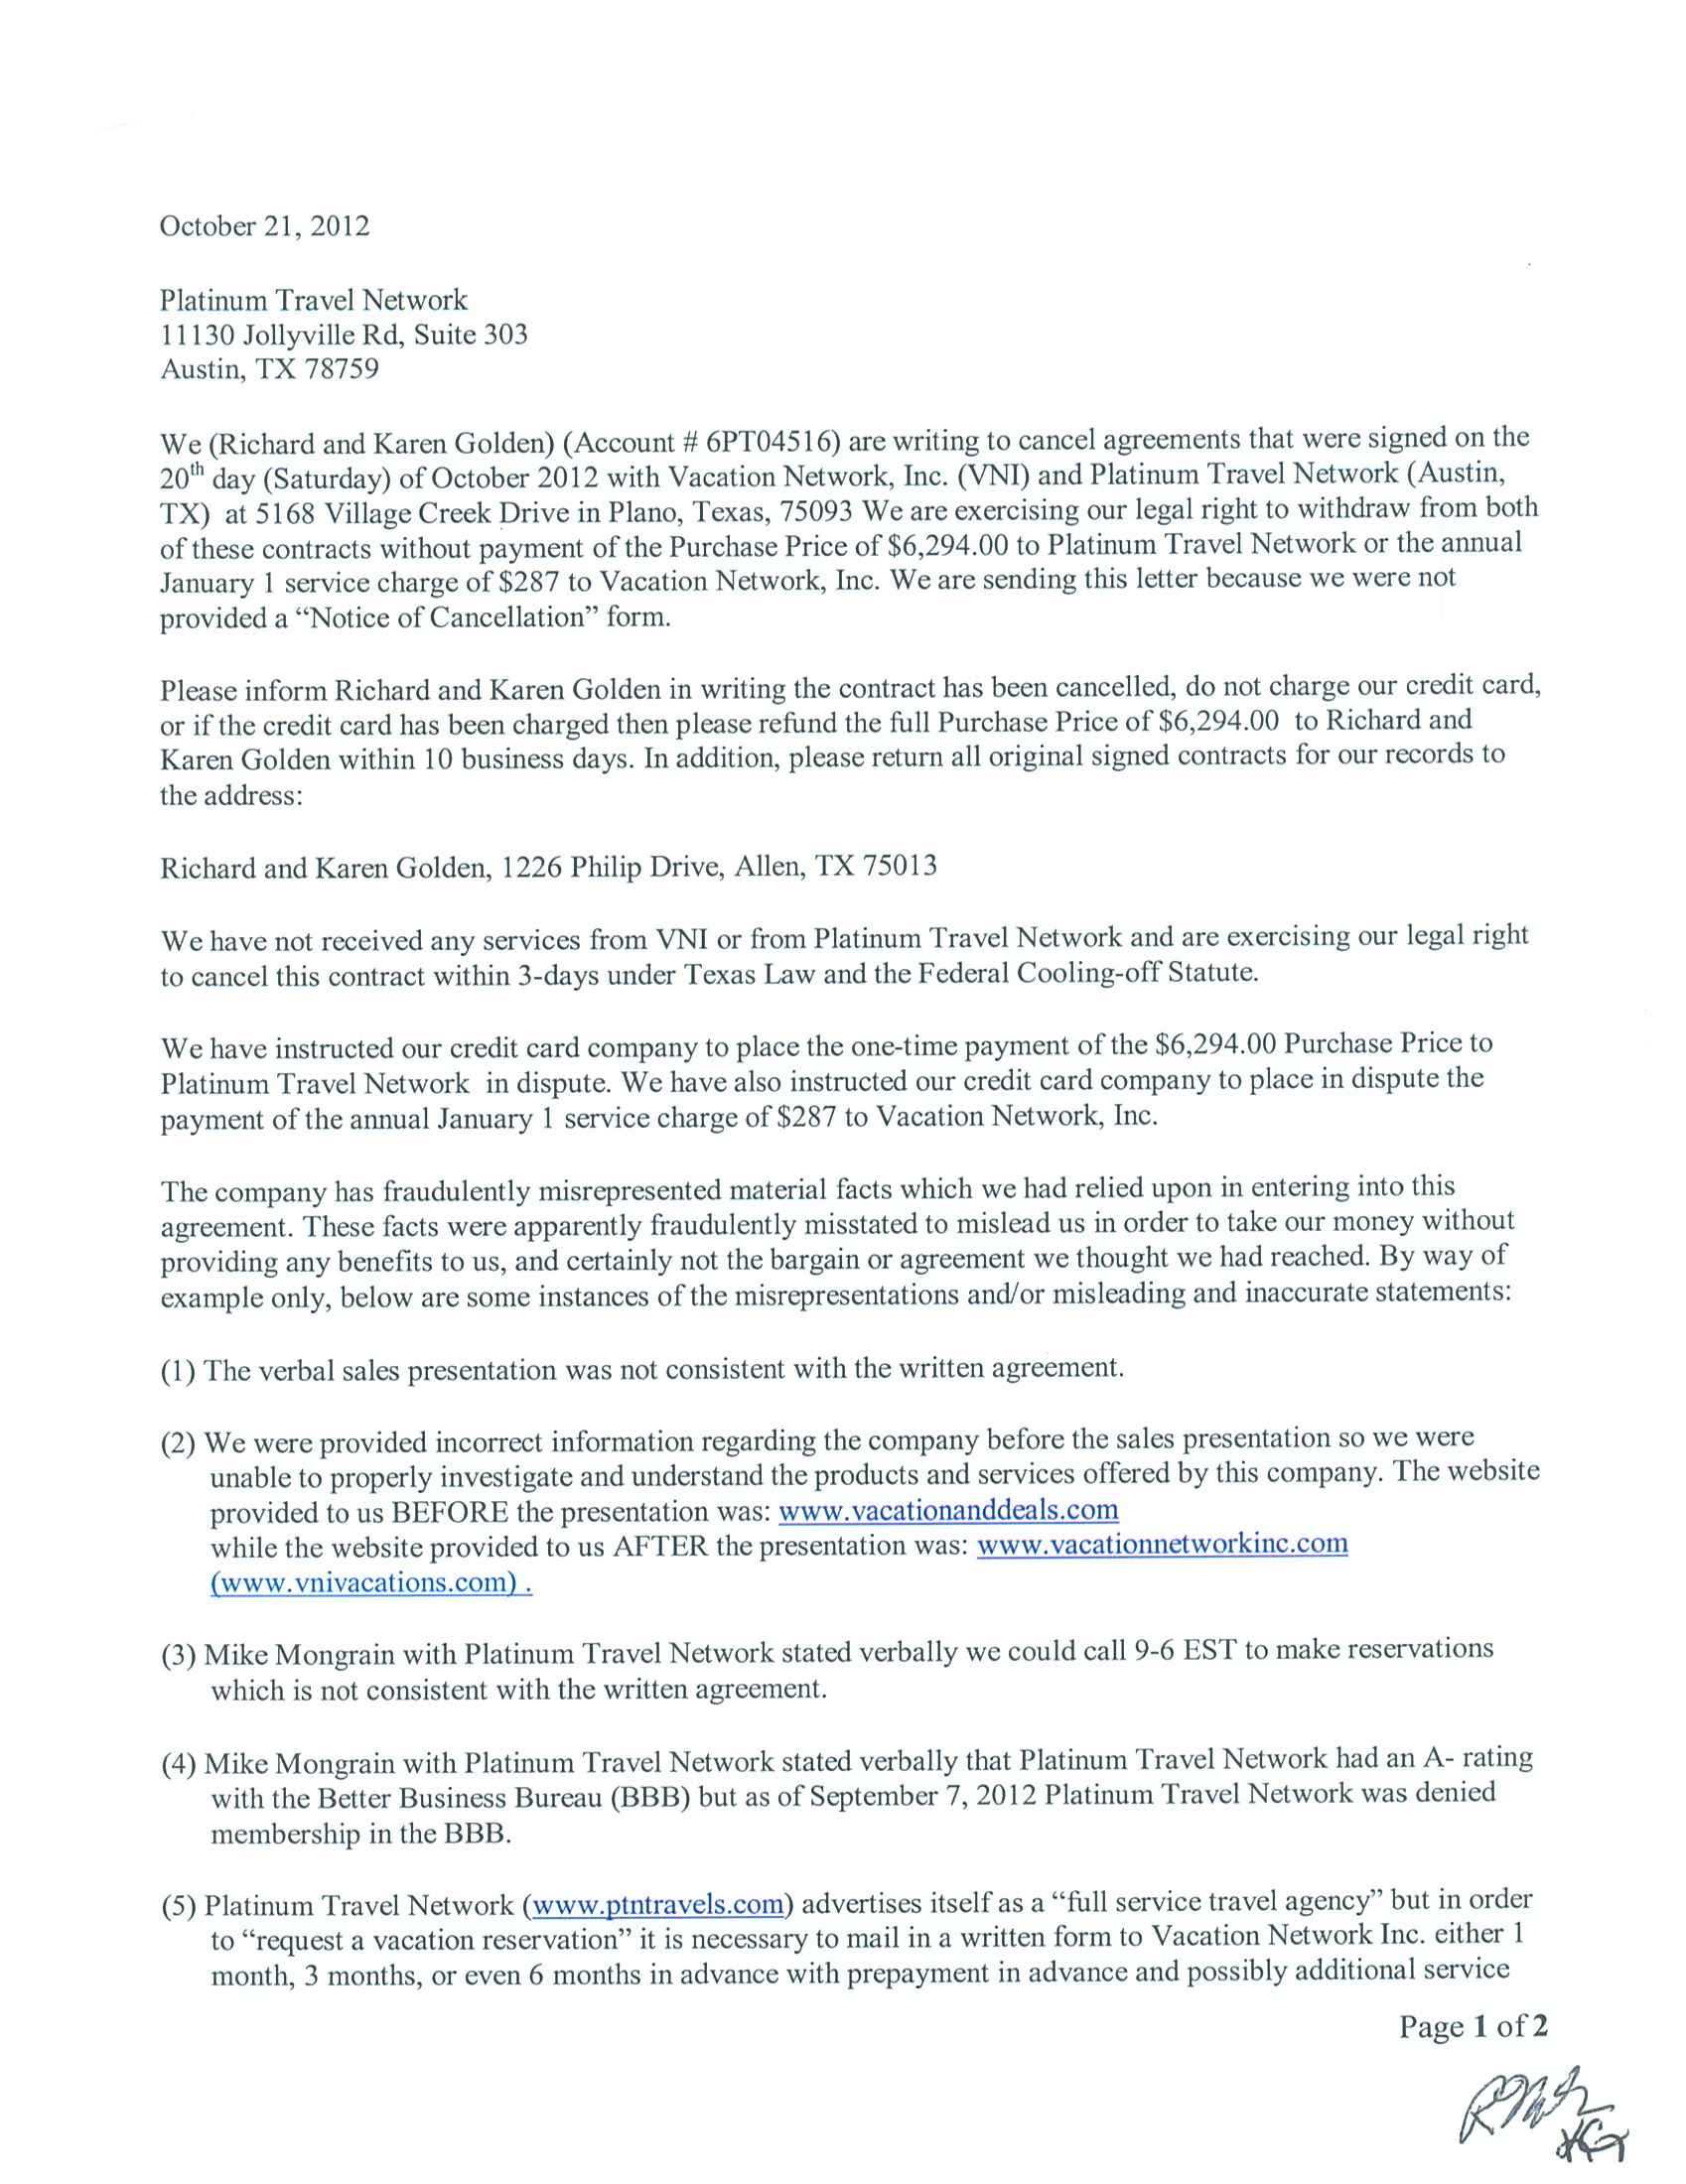 Reservation letter ultimate guide to no objection letter for tourist visa thecheapjerseys Choice Image